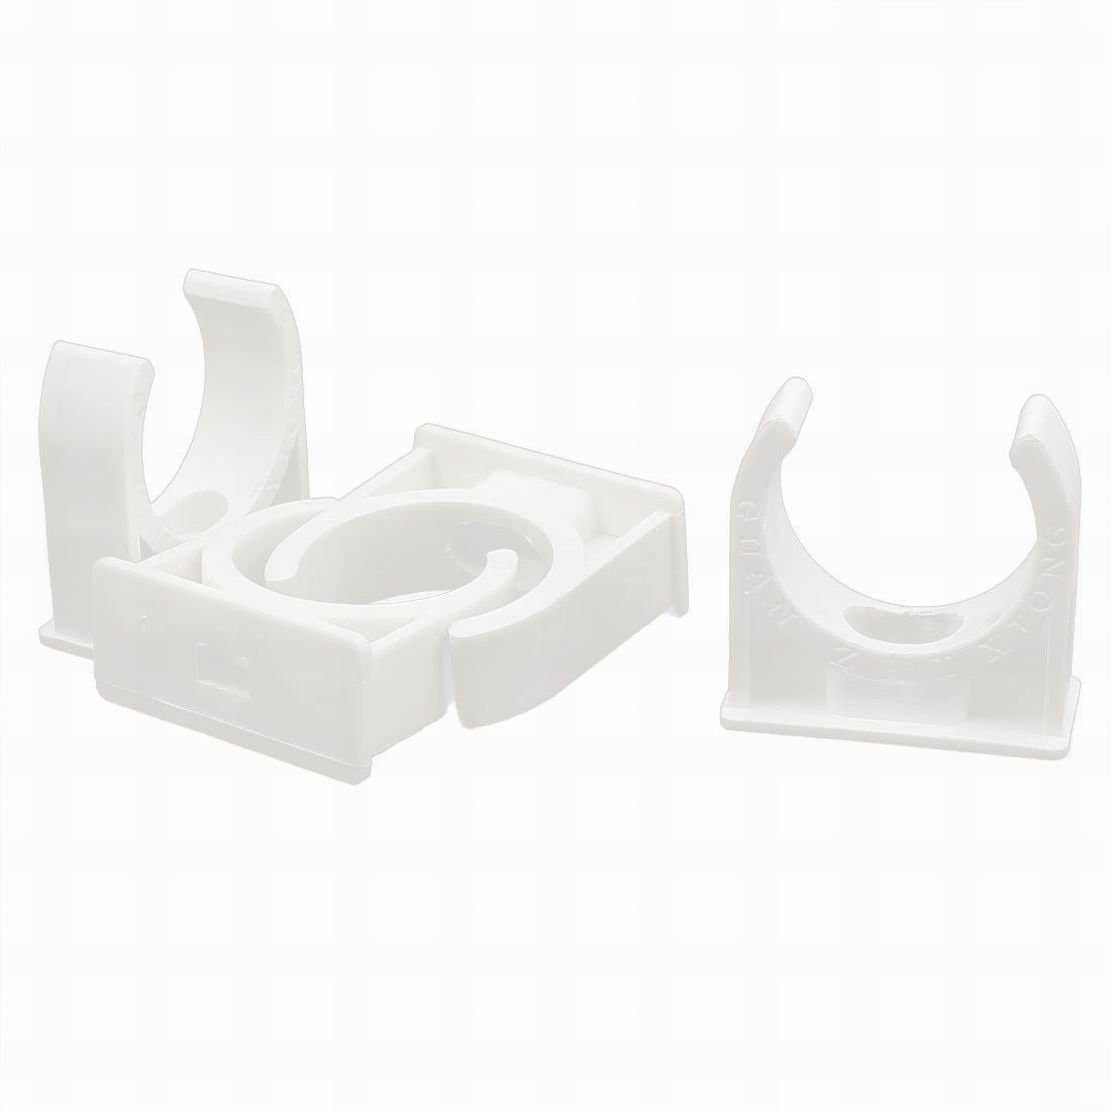 Uptell Water Supply Tube Pipe Hose 31mm Diameter PVC Clamps Clips White 4PCS